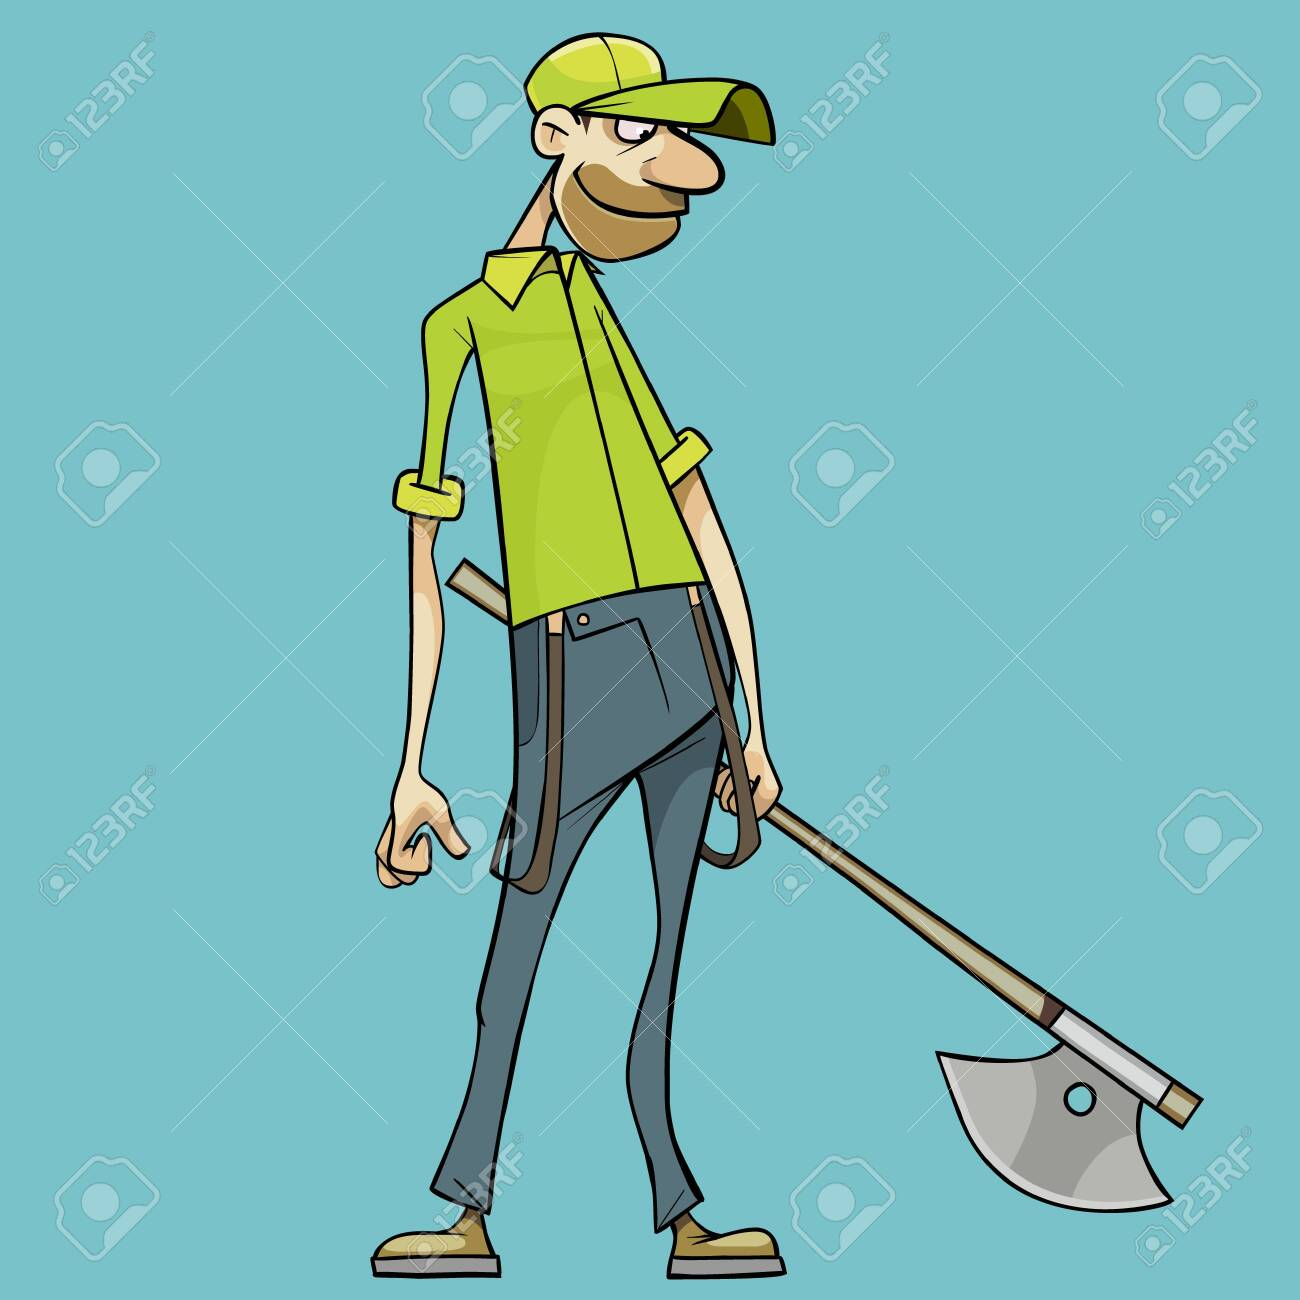 smiling cartoon man with ax in hand looks down - 148075756